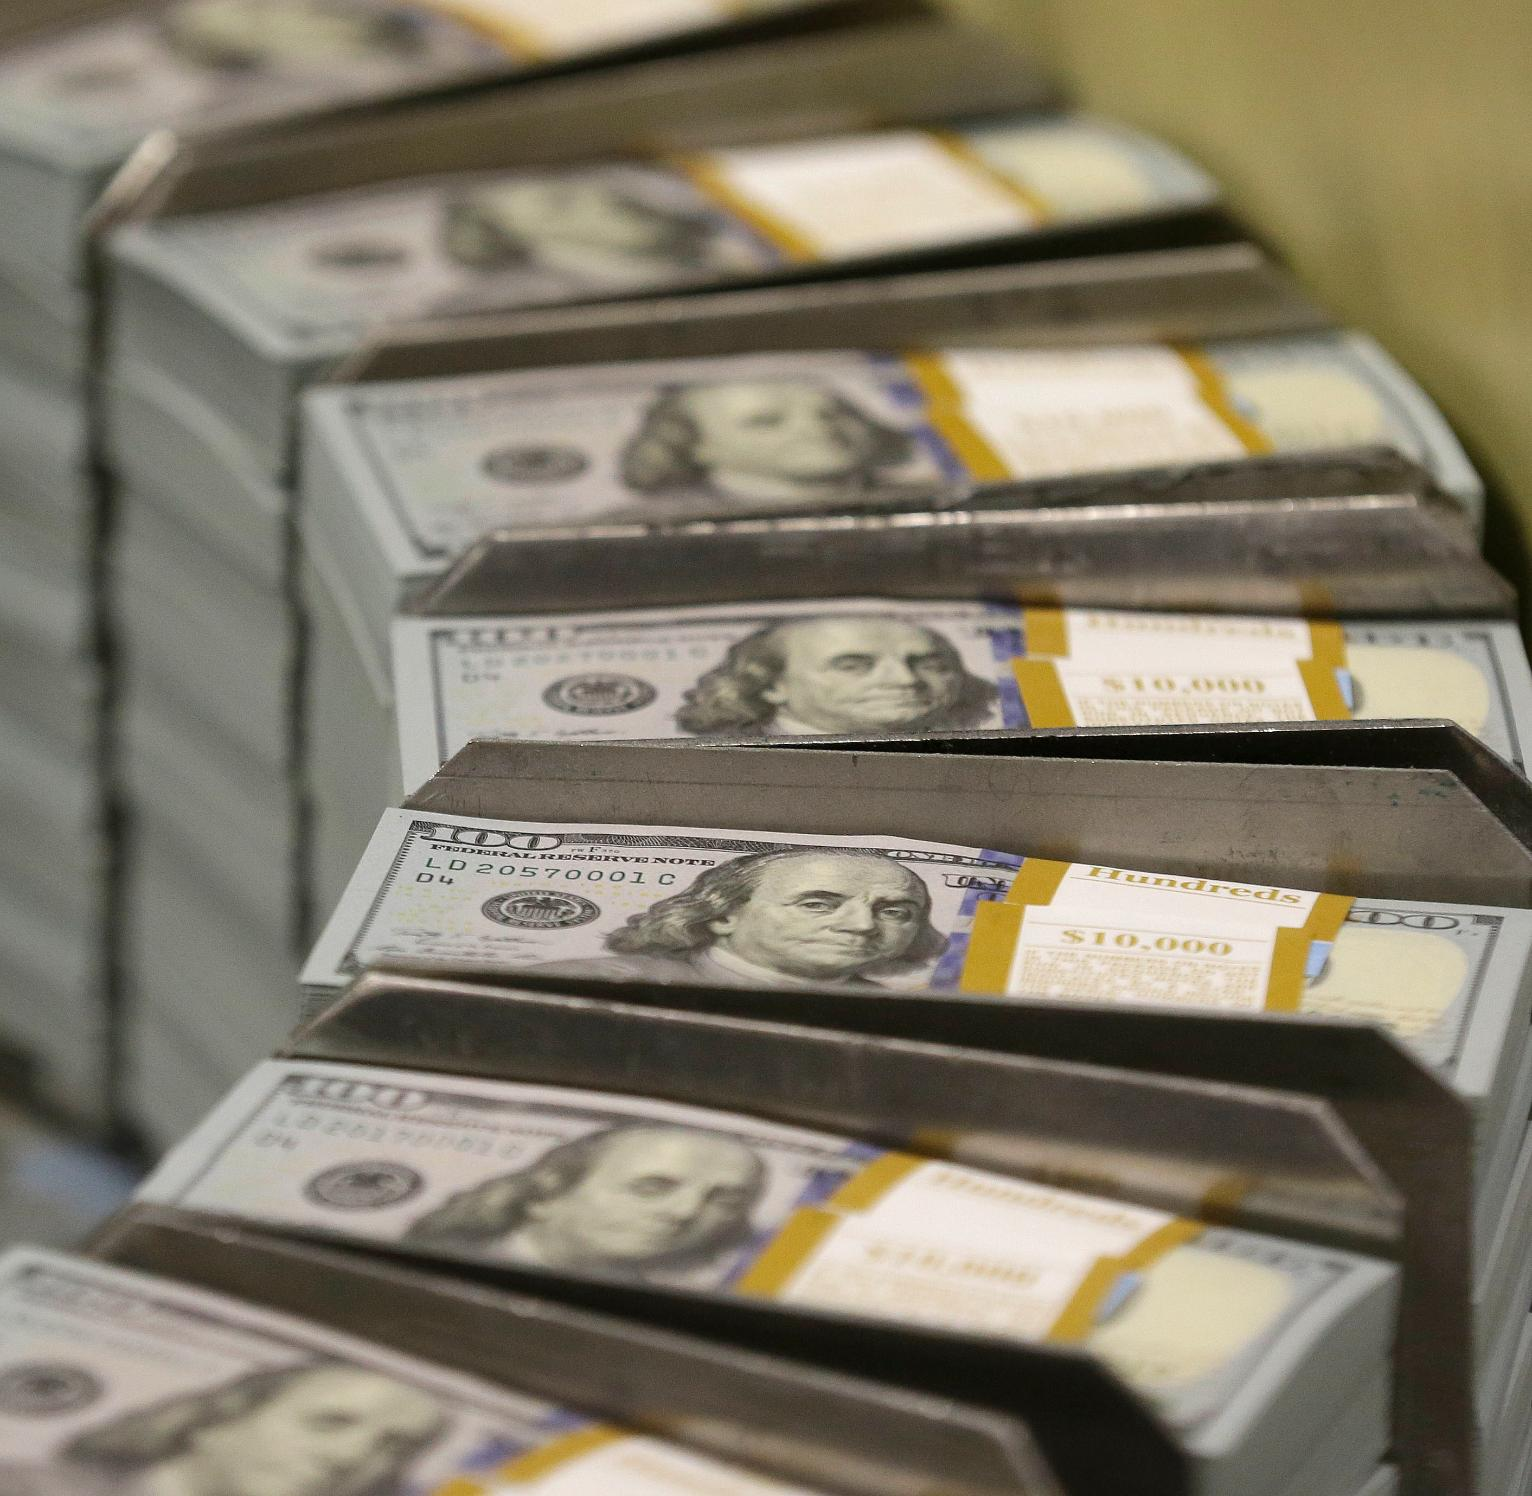 New peak for US health care spending: $10,345 per person | Health News | US News